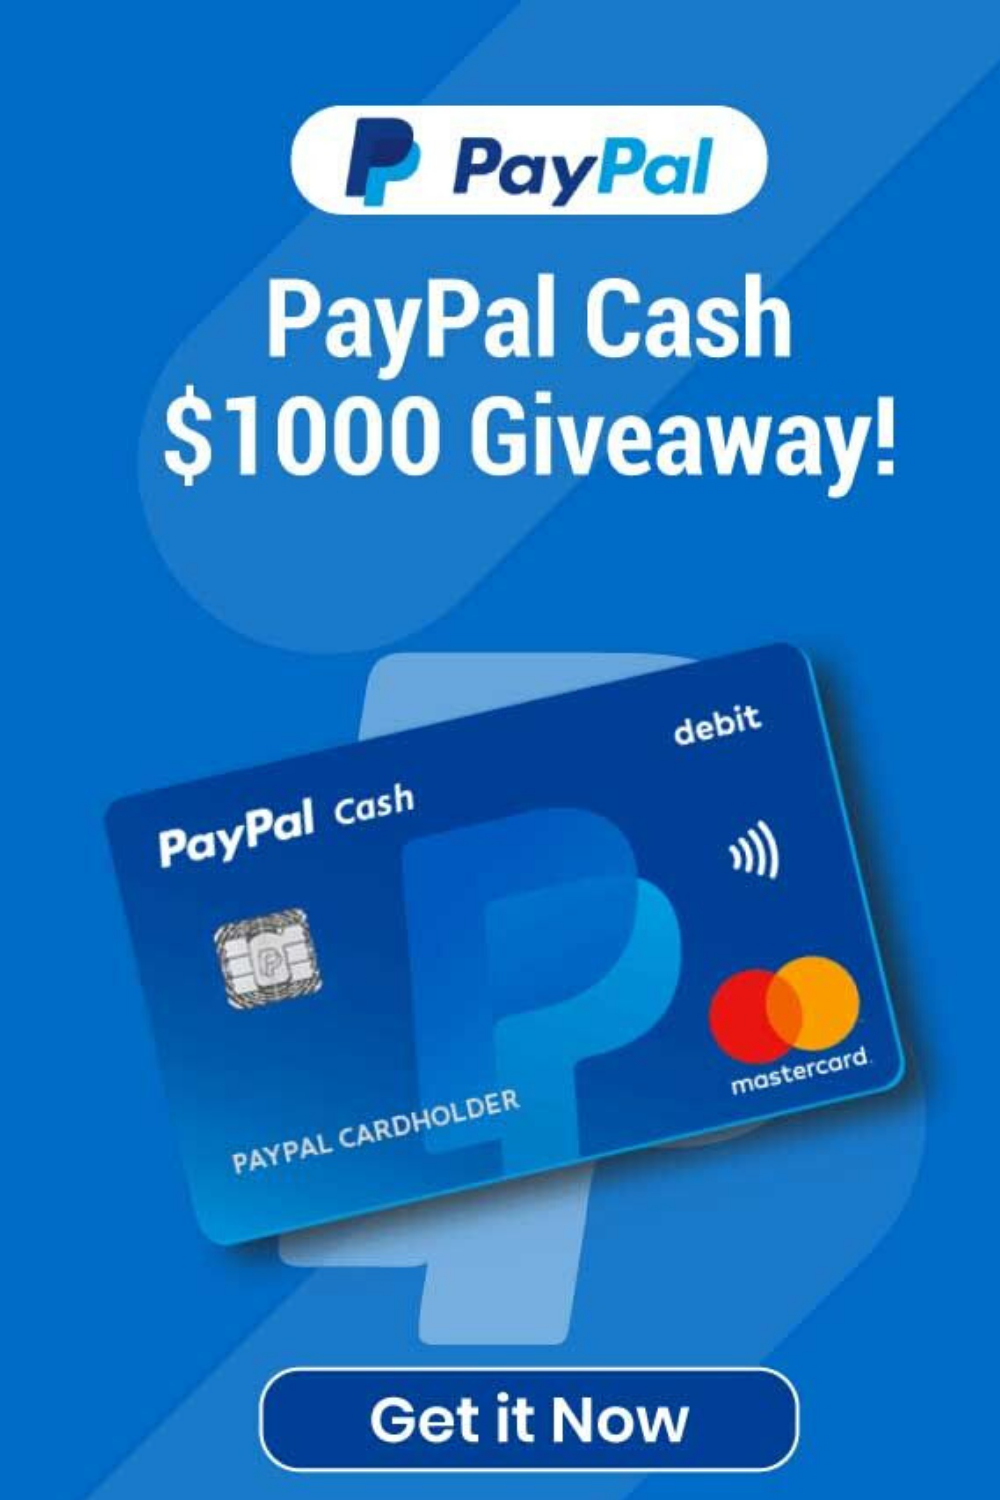 Get a 1000 PayPal Gift Card Now! Claim Free PayPal Money